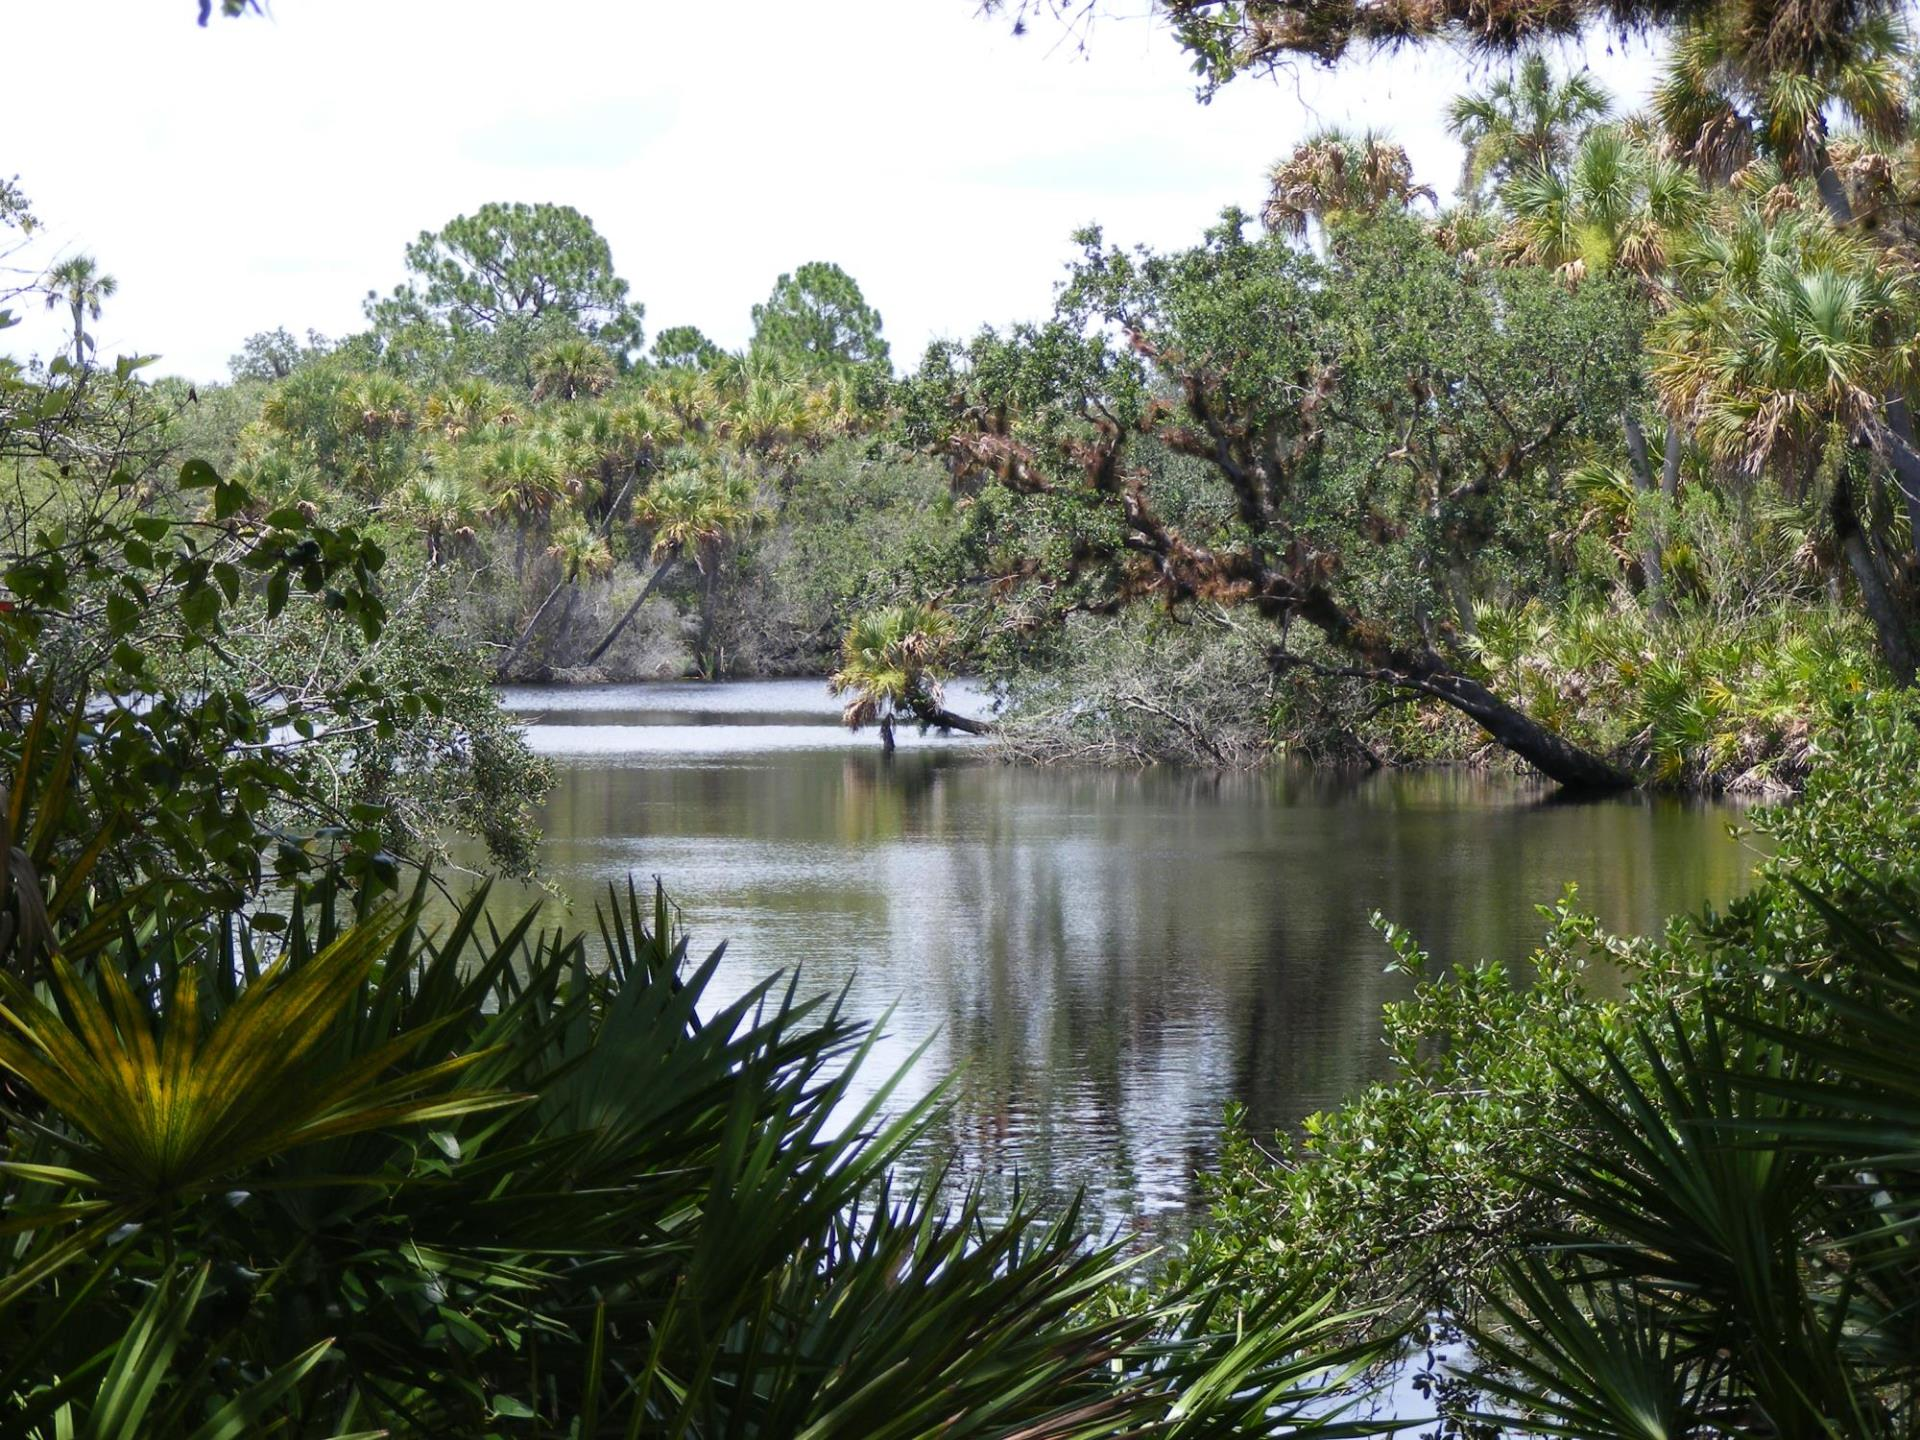 Myakka River at Jelks